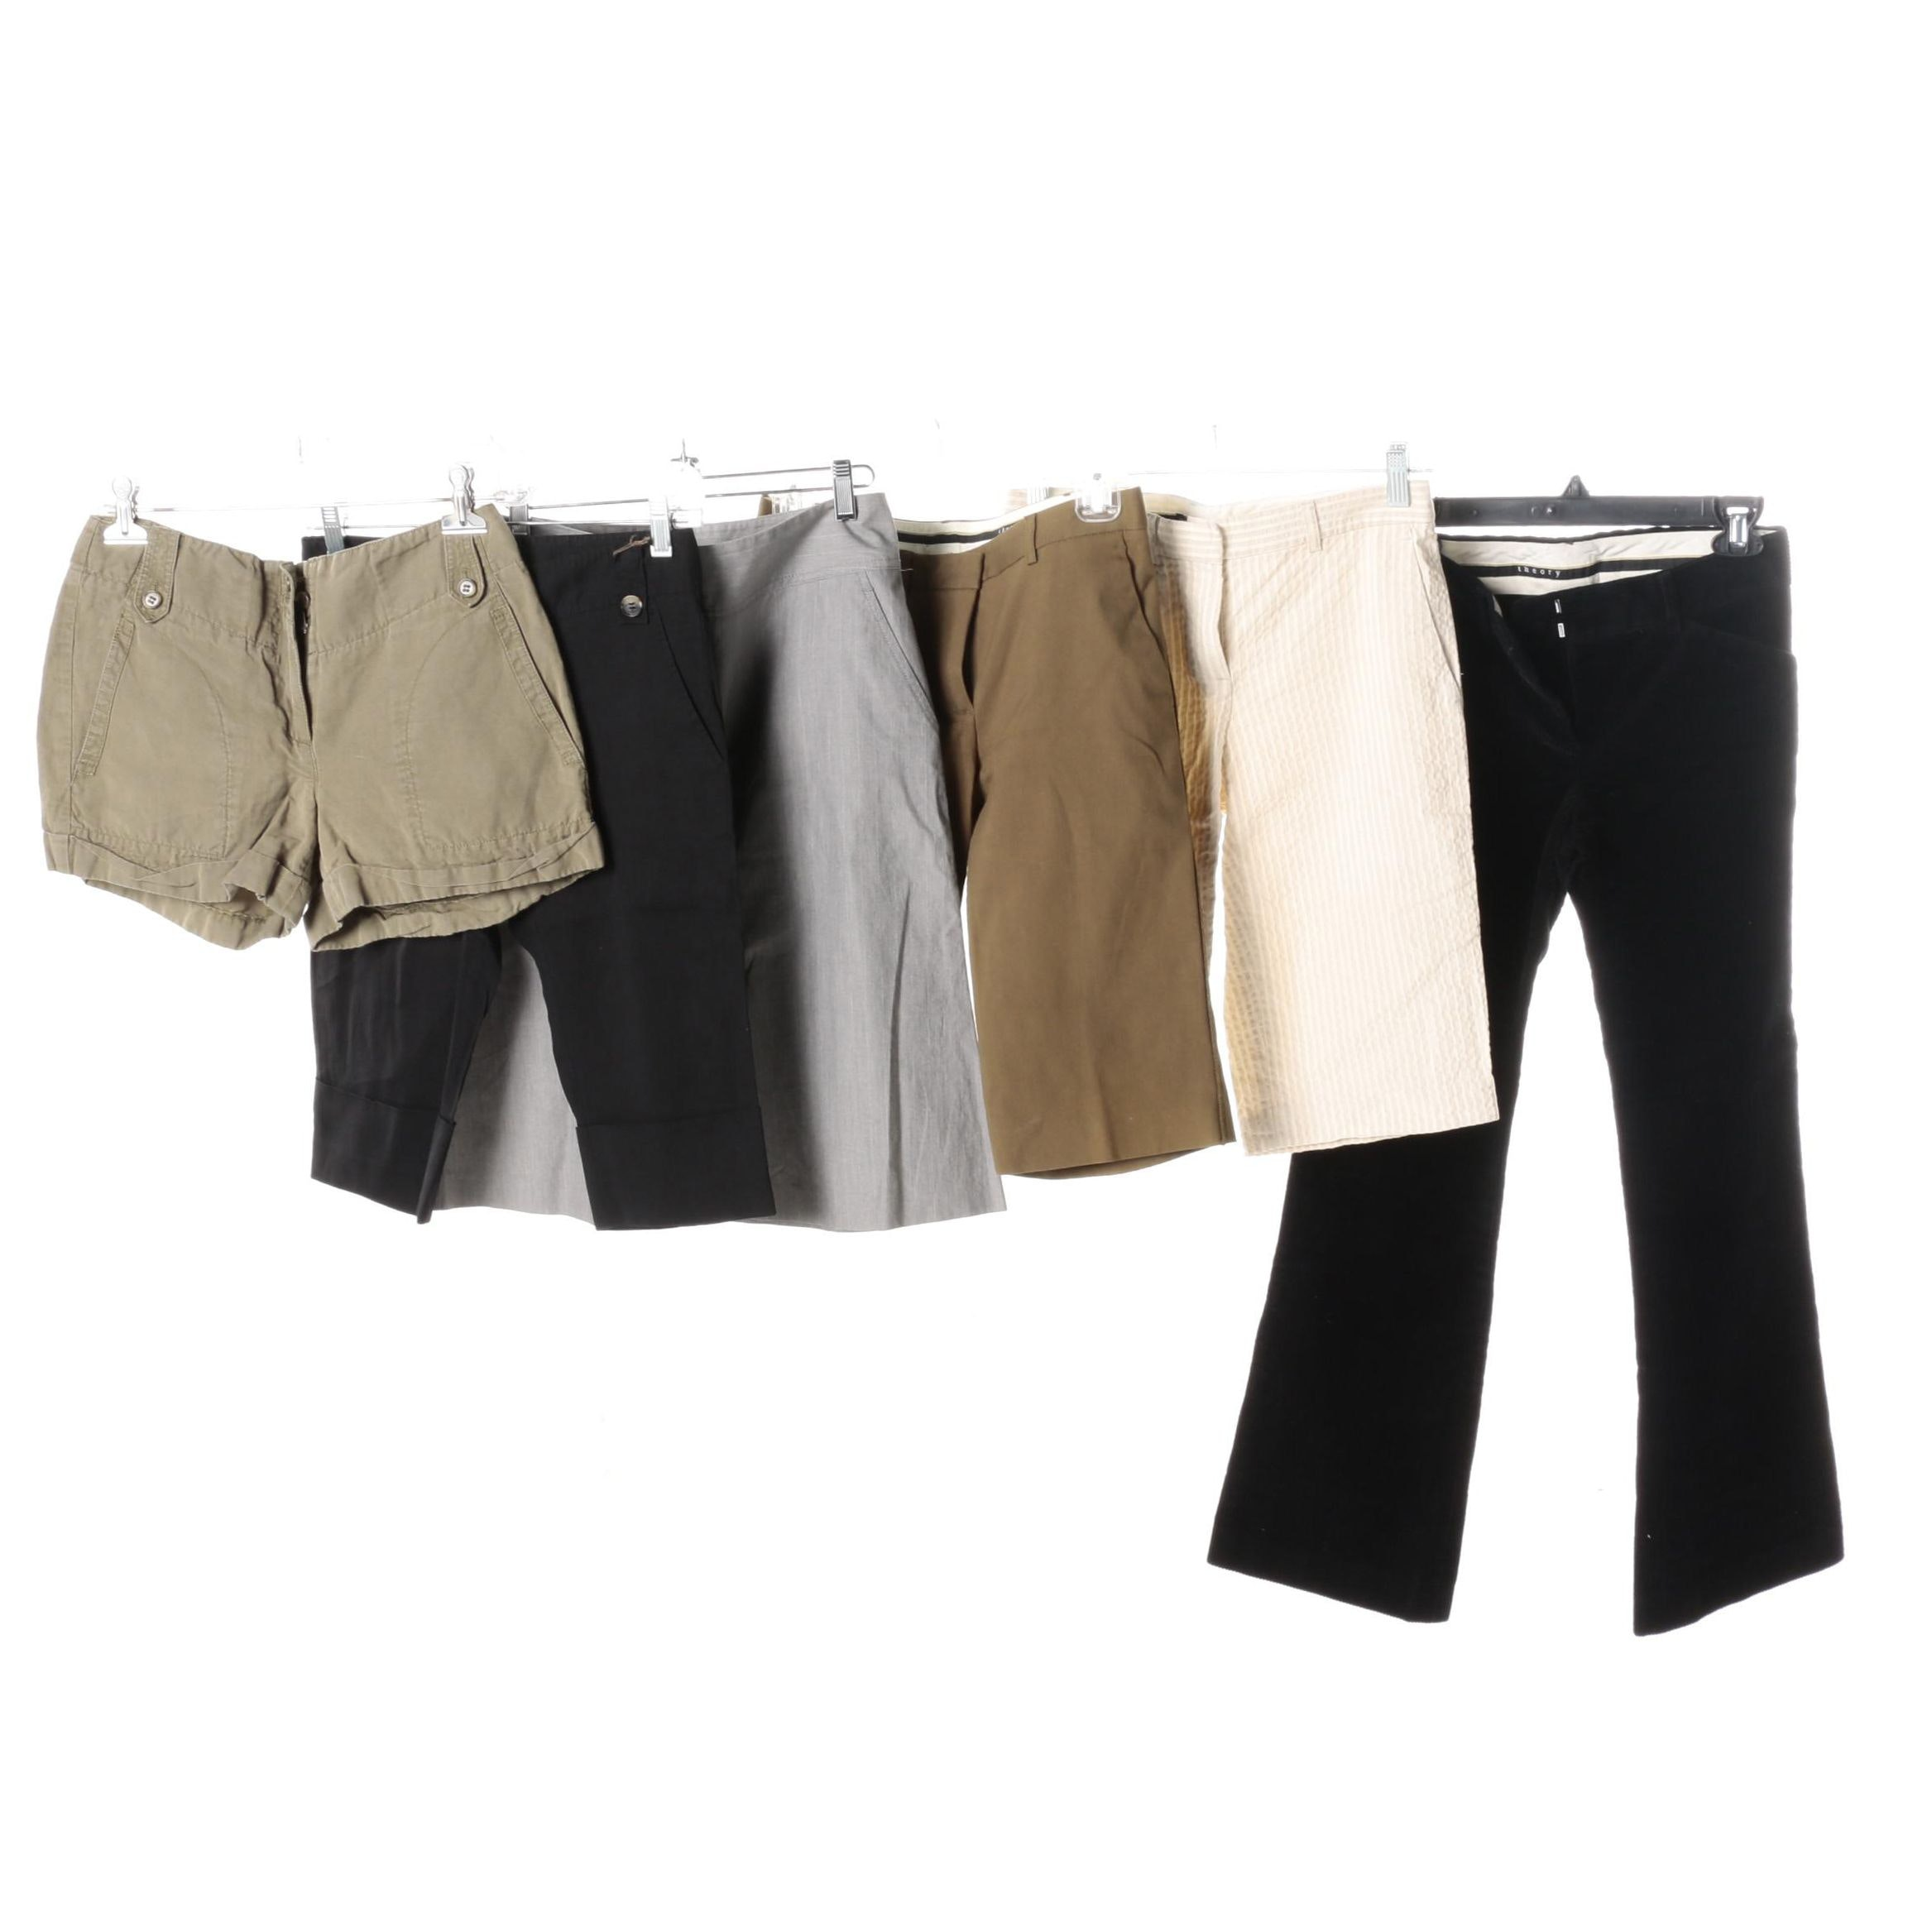 Women's Theory Shorts, Capris and Pants